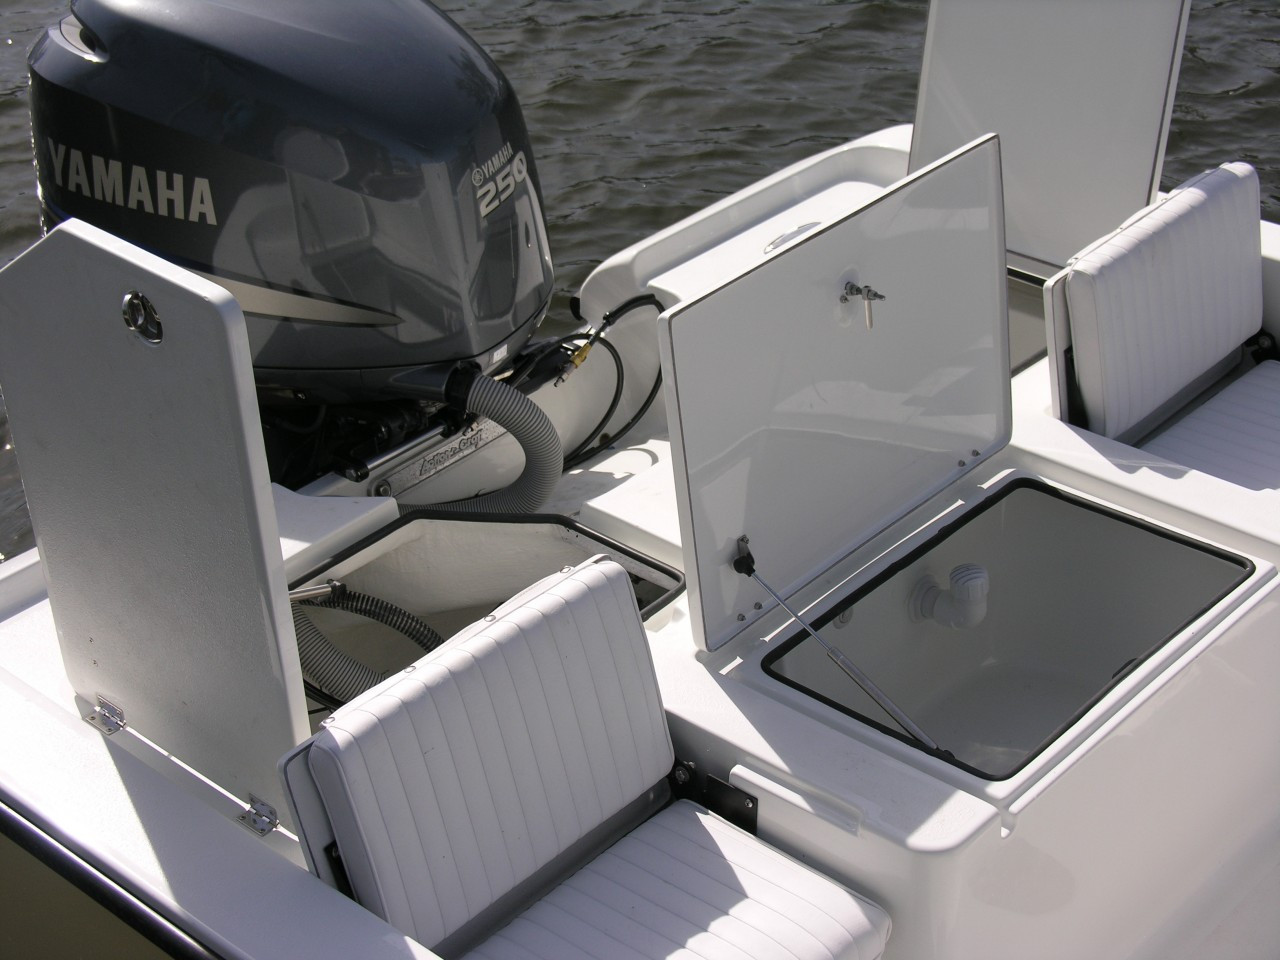 Action Craft Coastal Bay 2310 http://www.actioncraftboatparts.com/coastal-bay-jump-seat-lower-seat-2310/